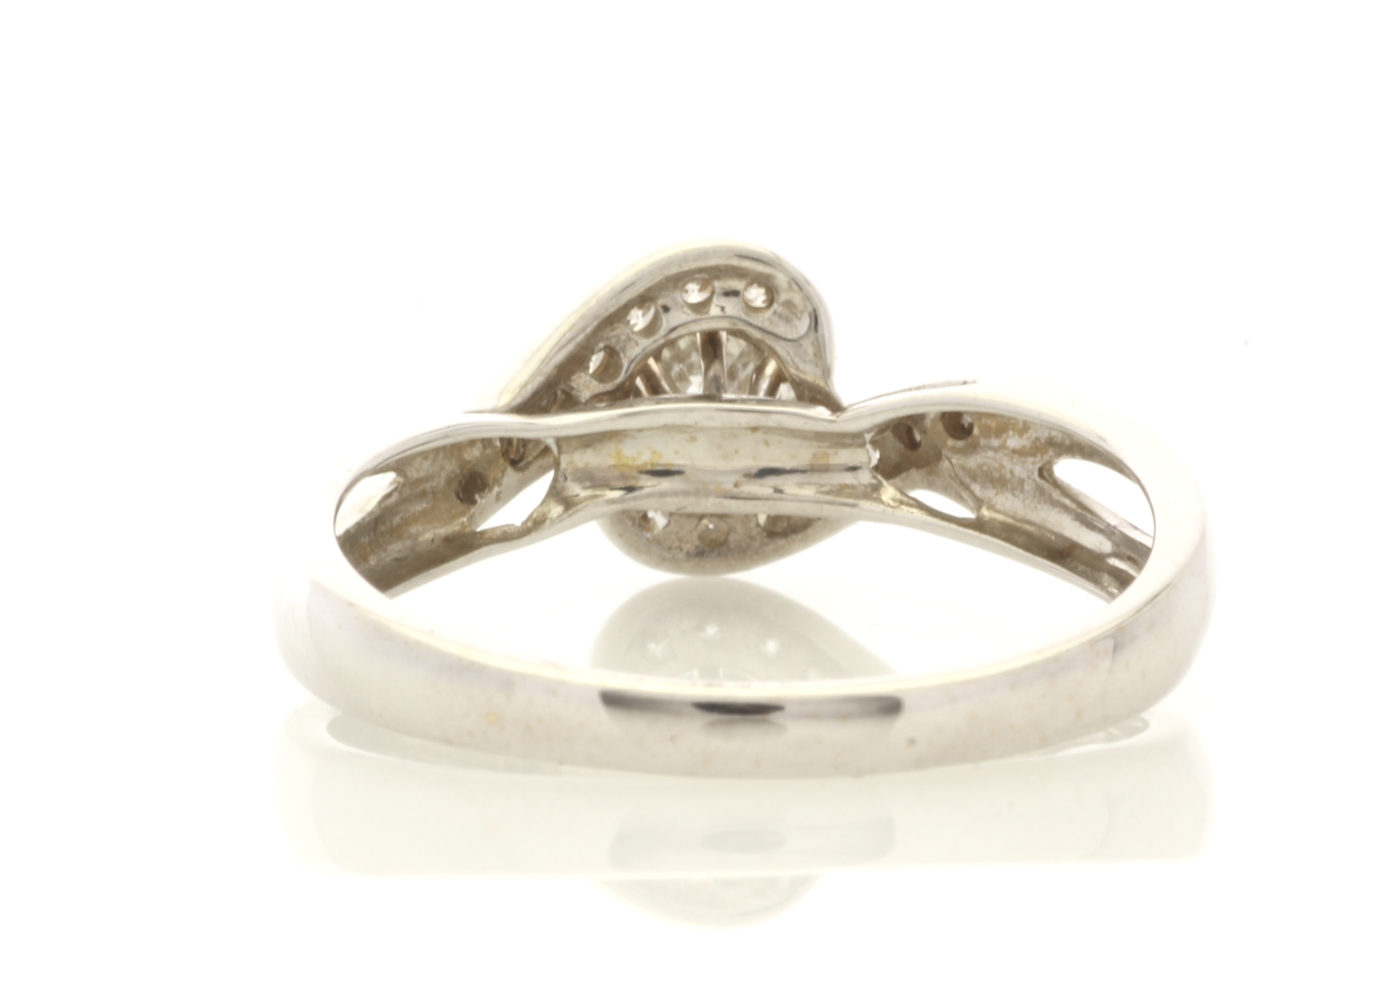 18ct White Gold Stone Set Shoulders Diamond Ring 0.61 Carats - Image 3 of 5